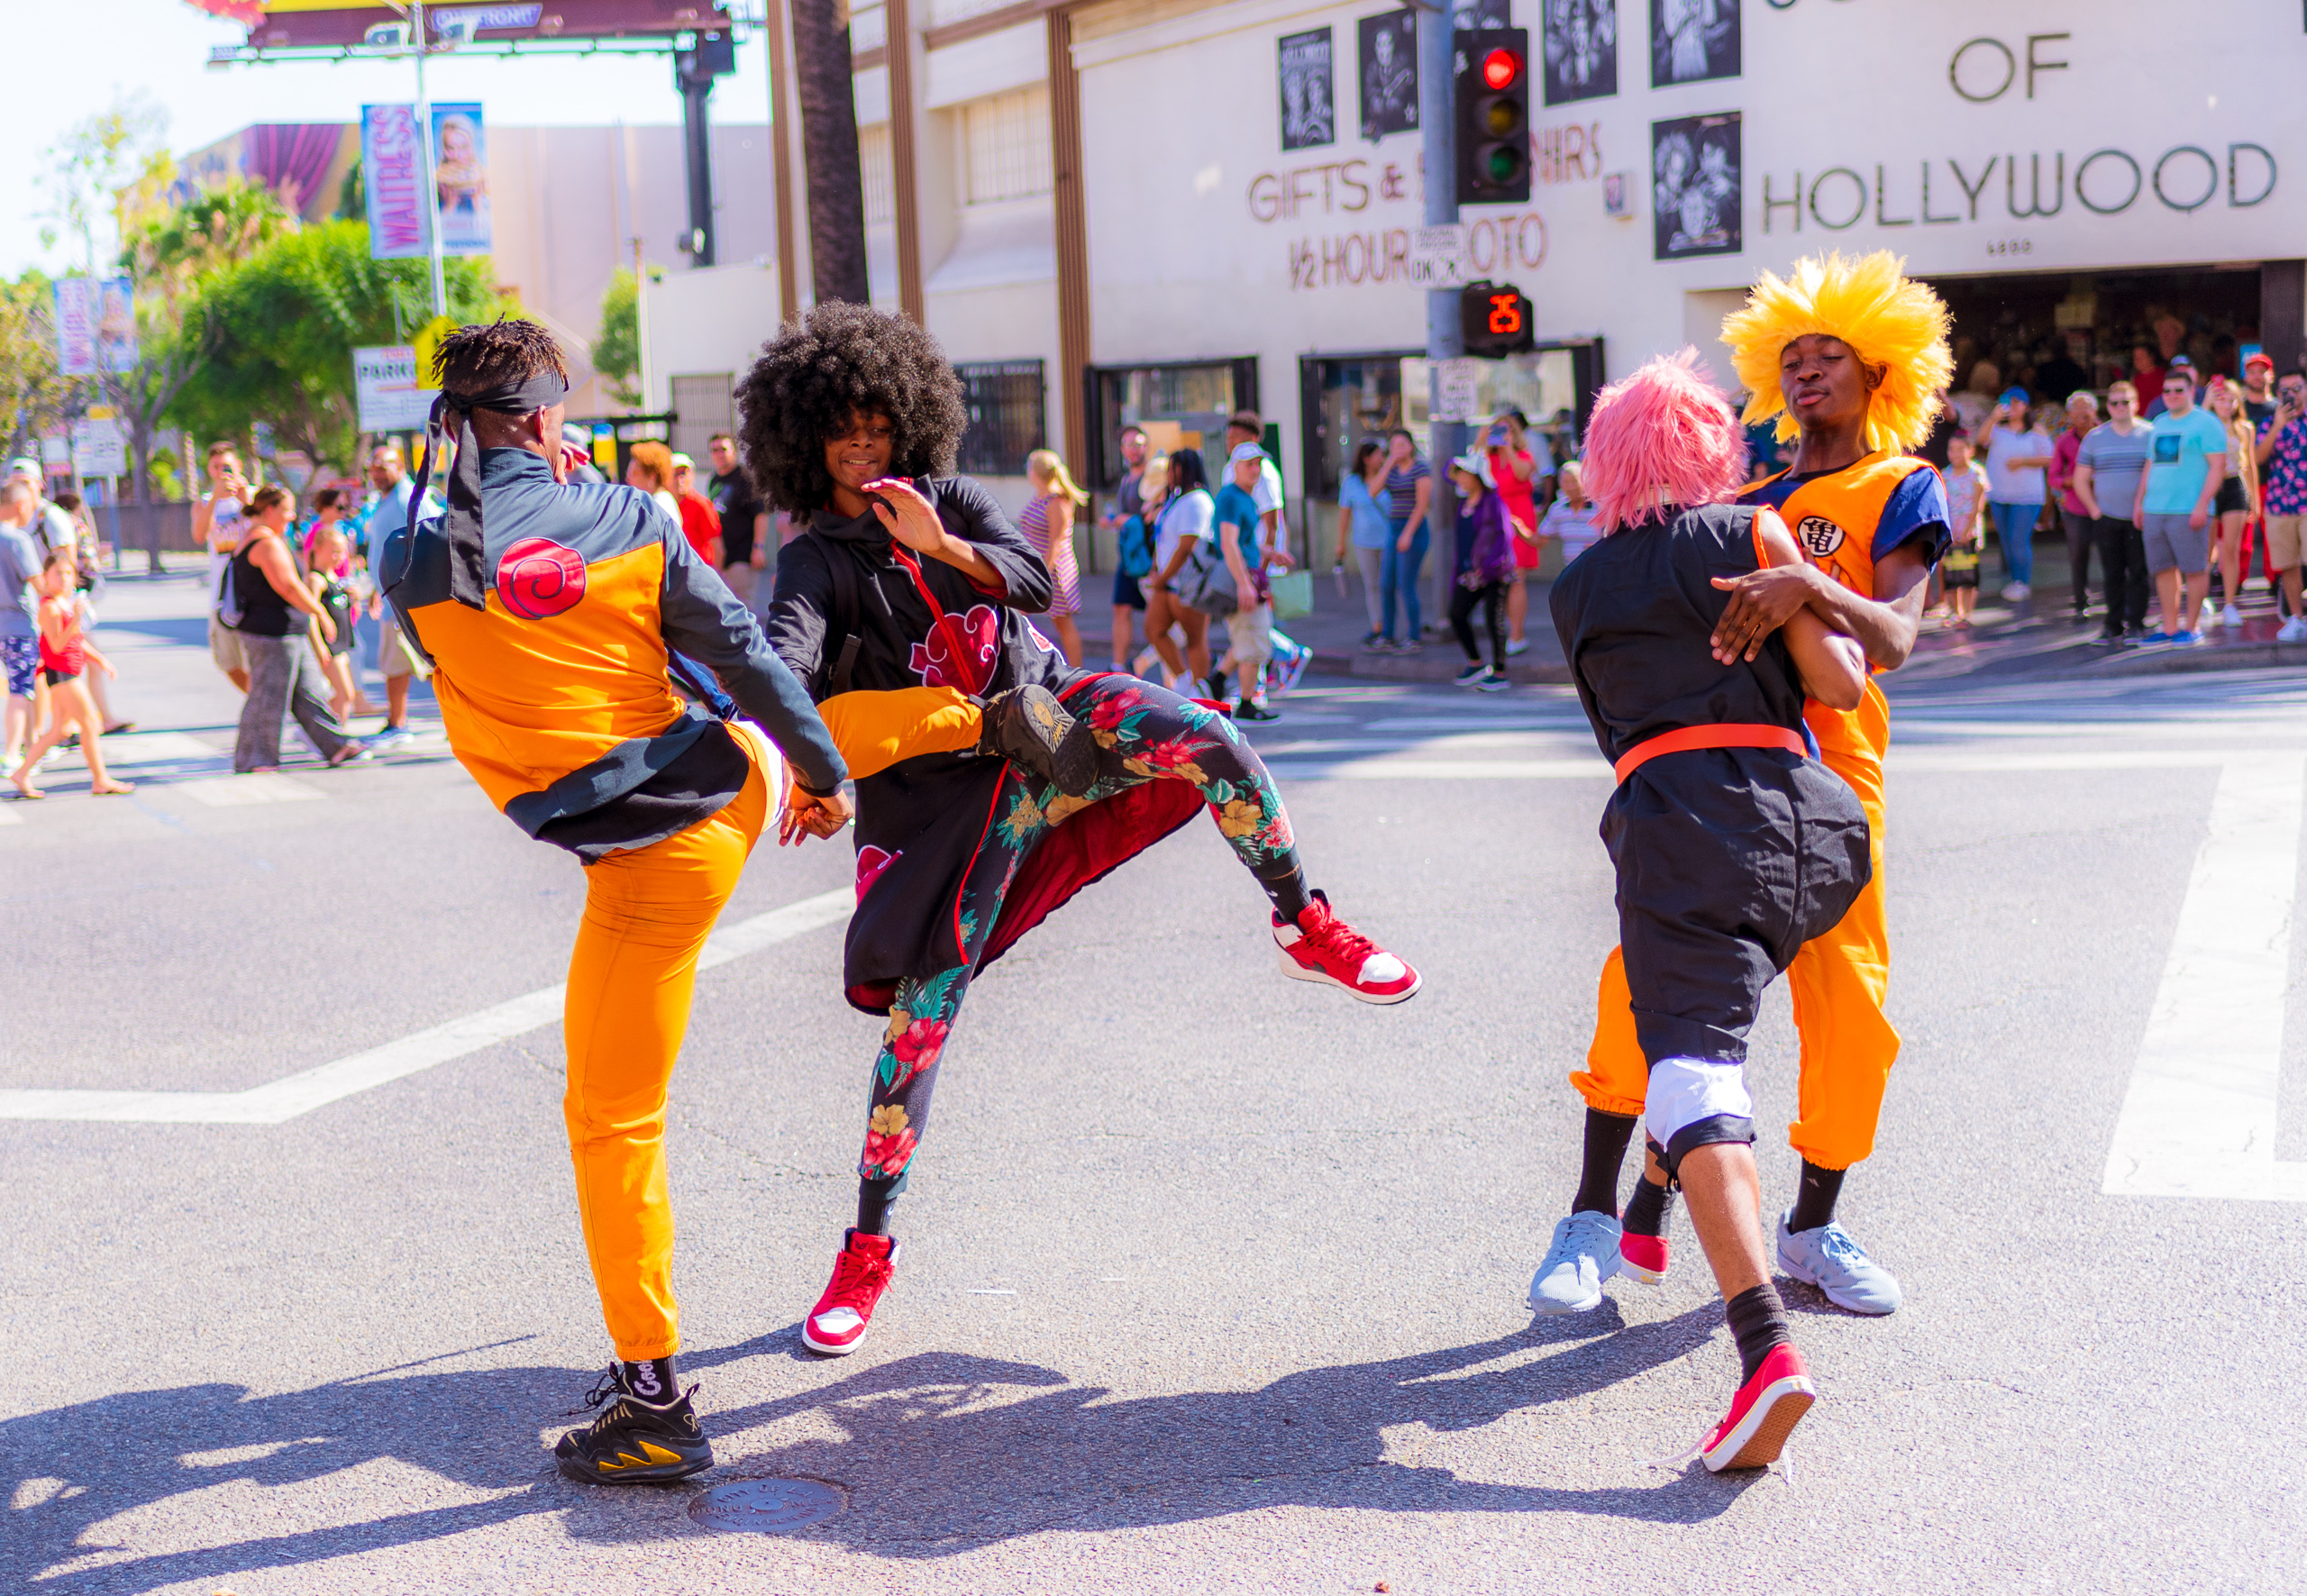 4 people in colorful costumes and BIG hair wigs stage a fight in the middle of the 4-Way crossing at Hollywood & Highland